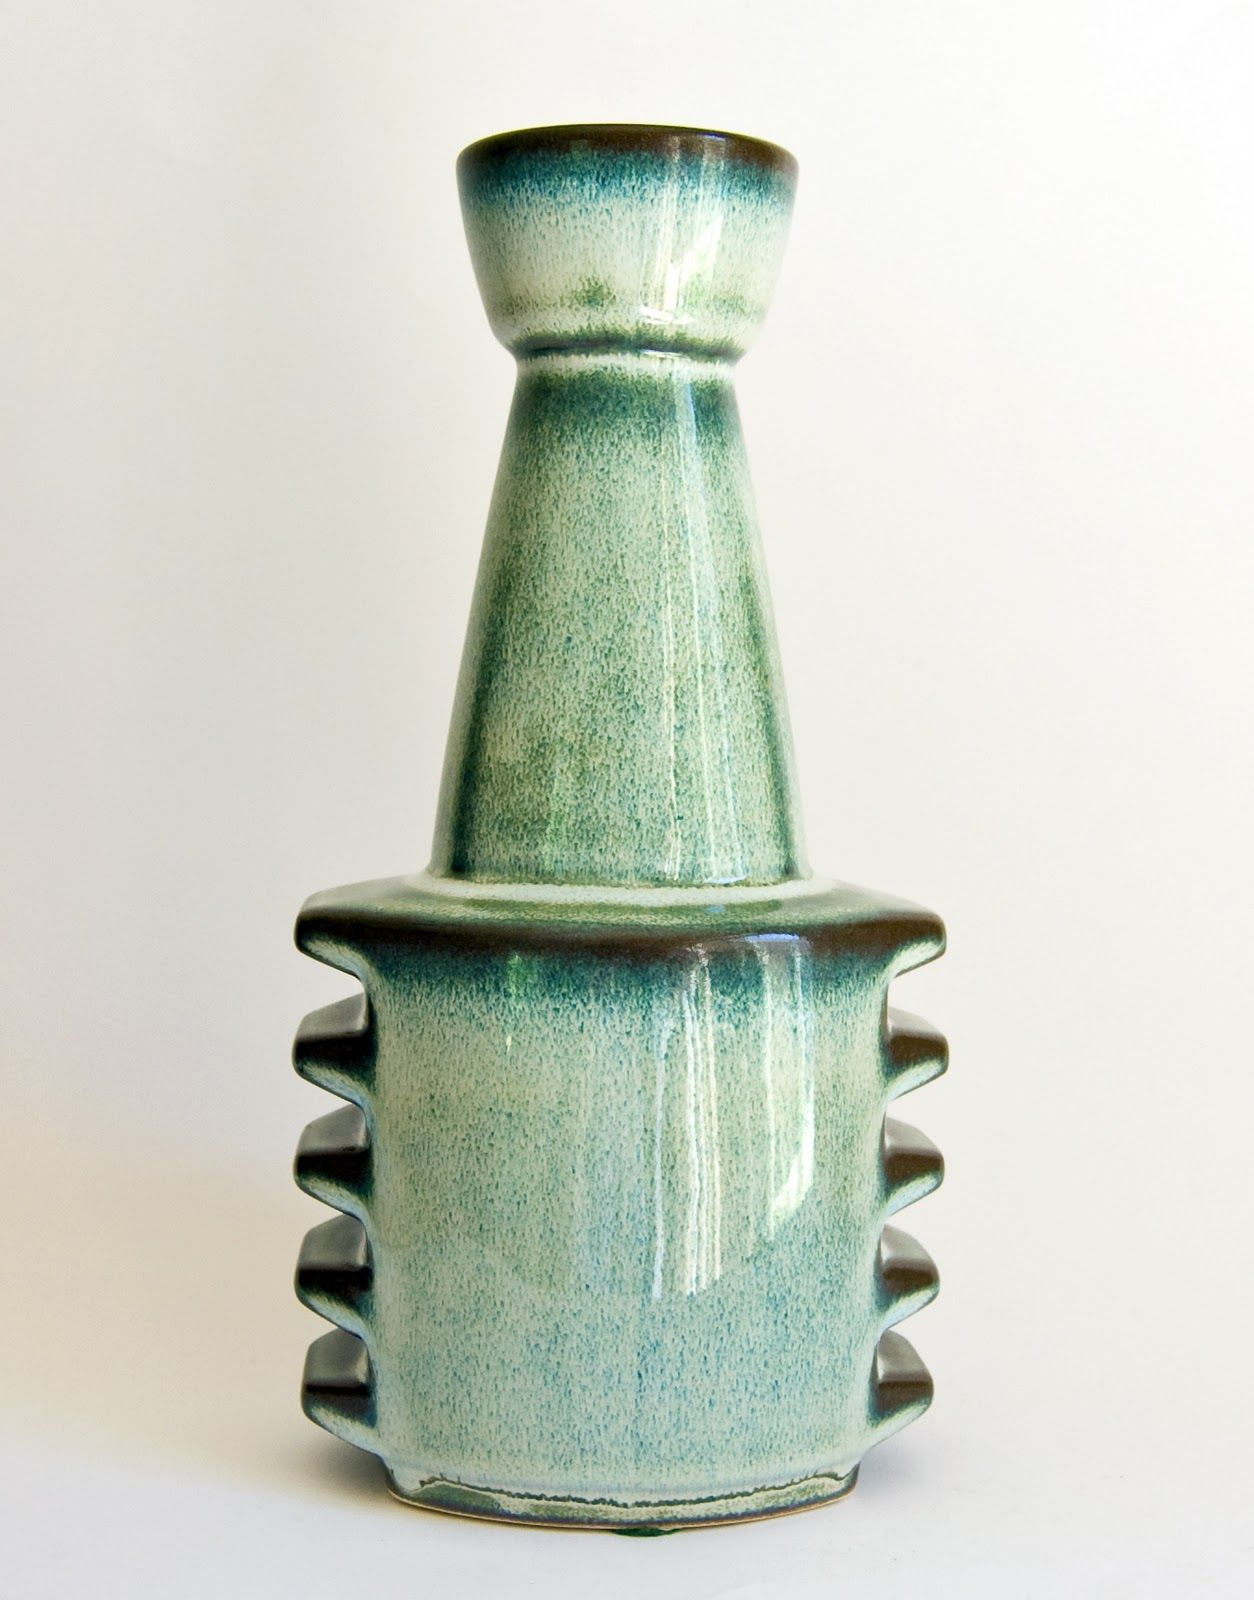 Einar johansen for soholm from the generous retro pottery net mint green vase designed by the iconic einar johansen for soholm bornholm denmark reviewsmspy